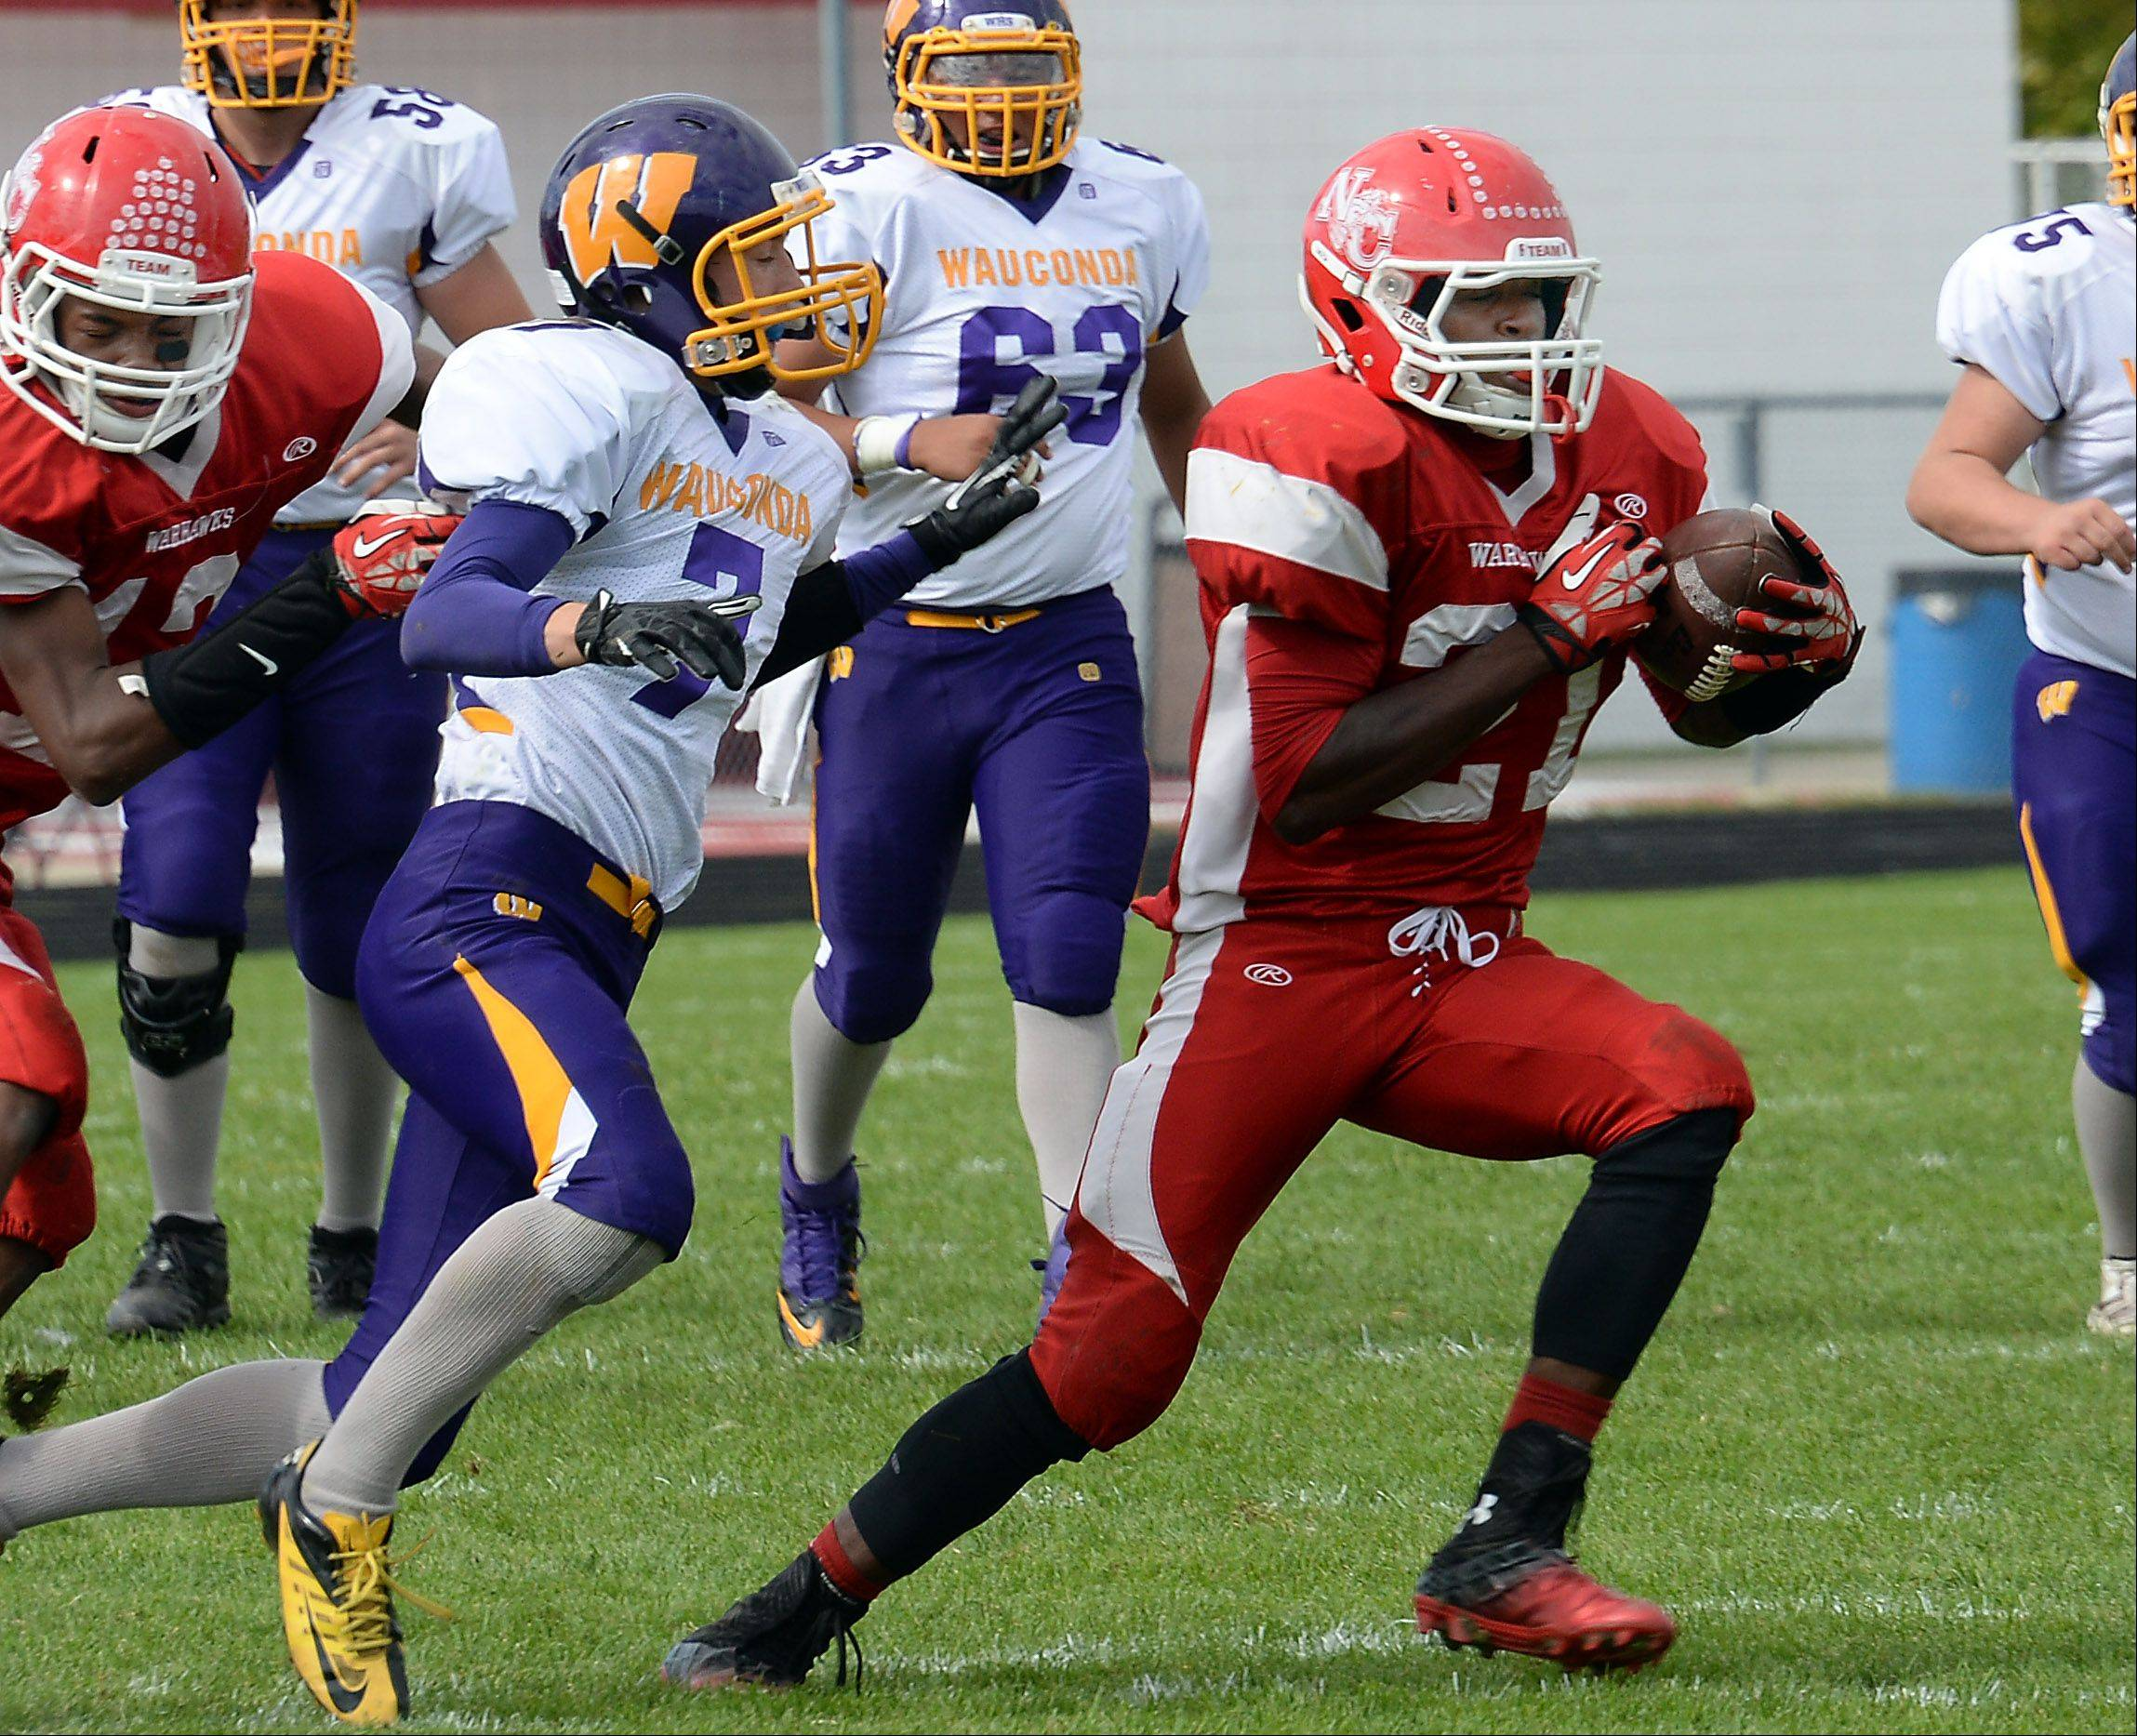 Wauconda's Joey Pausa is the intended receiver but North Chicago's Tazari Bryant picks it off for the interception in the first half of varsity footbll at North Chicago High School on Saturday.